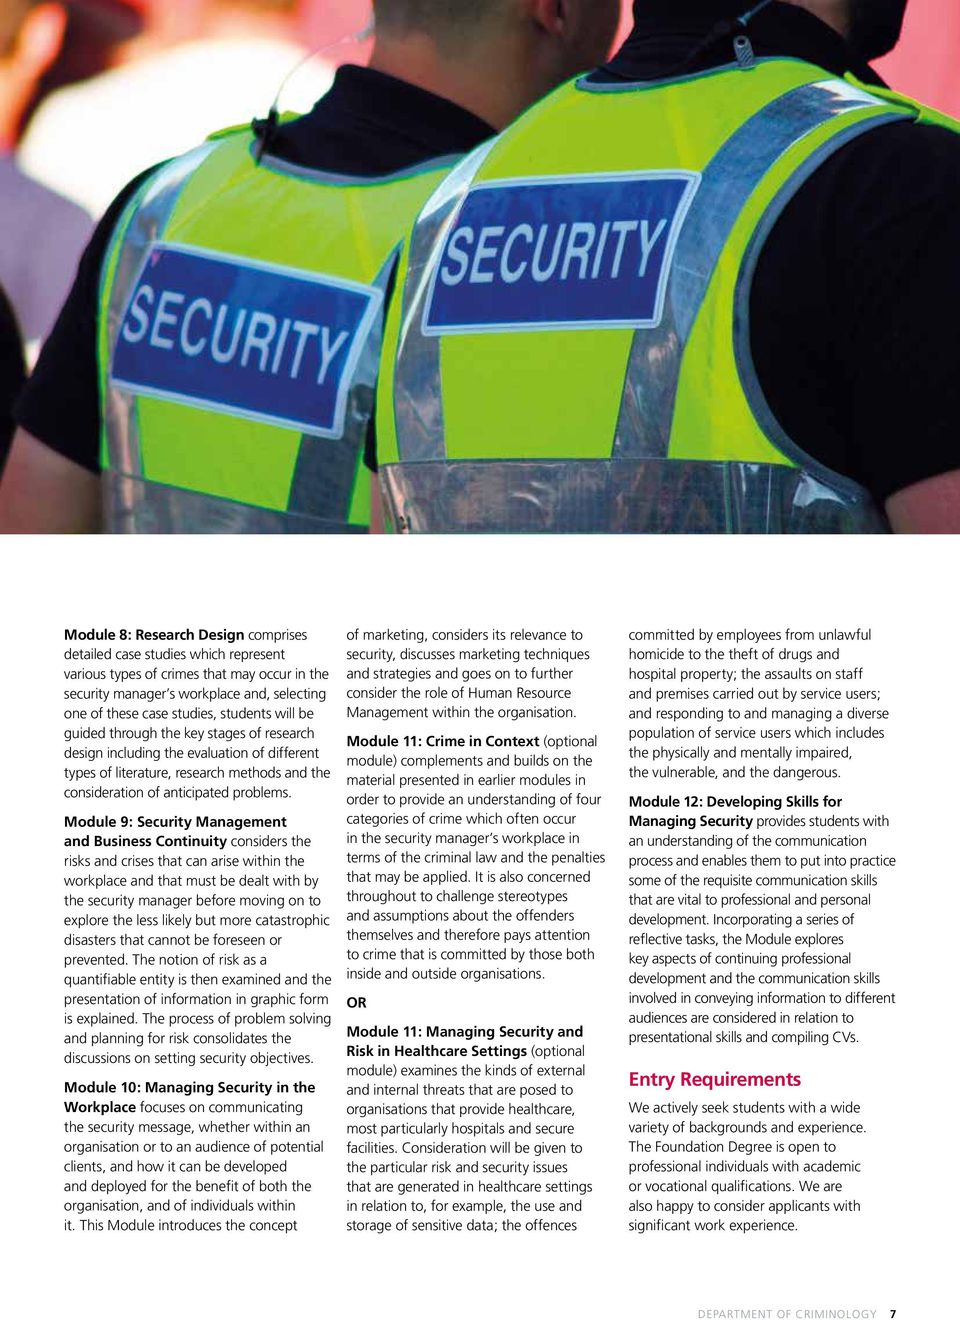 Module 9: Security Management and Business Continuity considers the risks and crises that can arise within the workplace and that must be dealt with by the security manager before moving on to